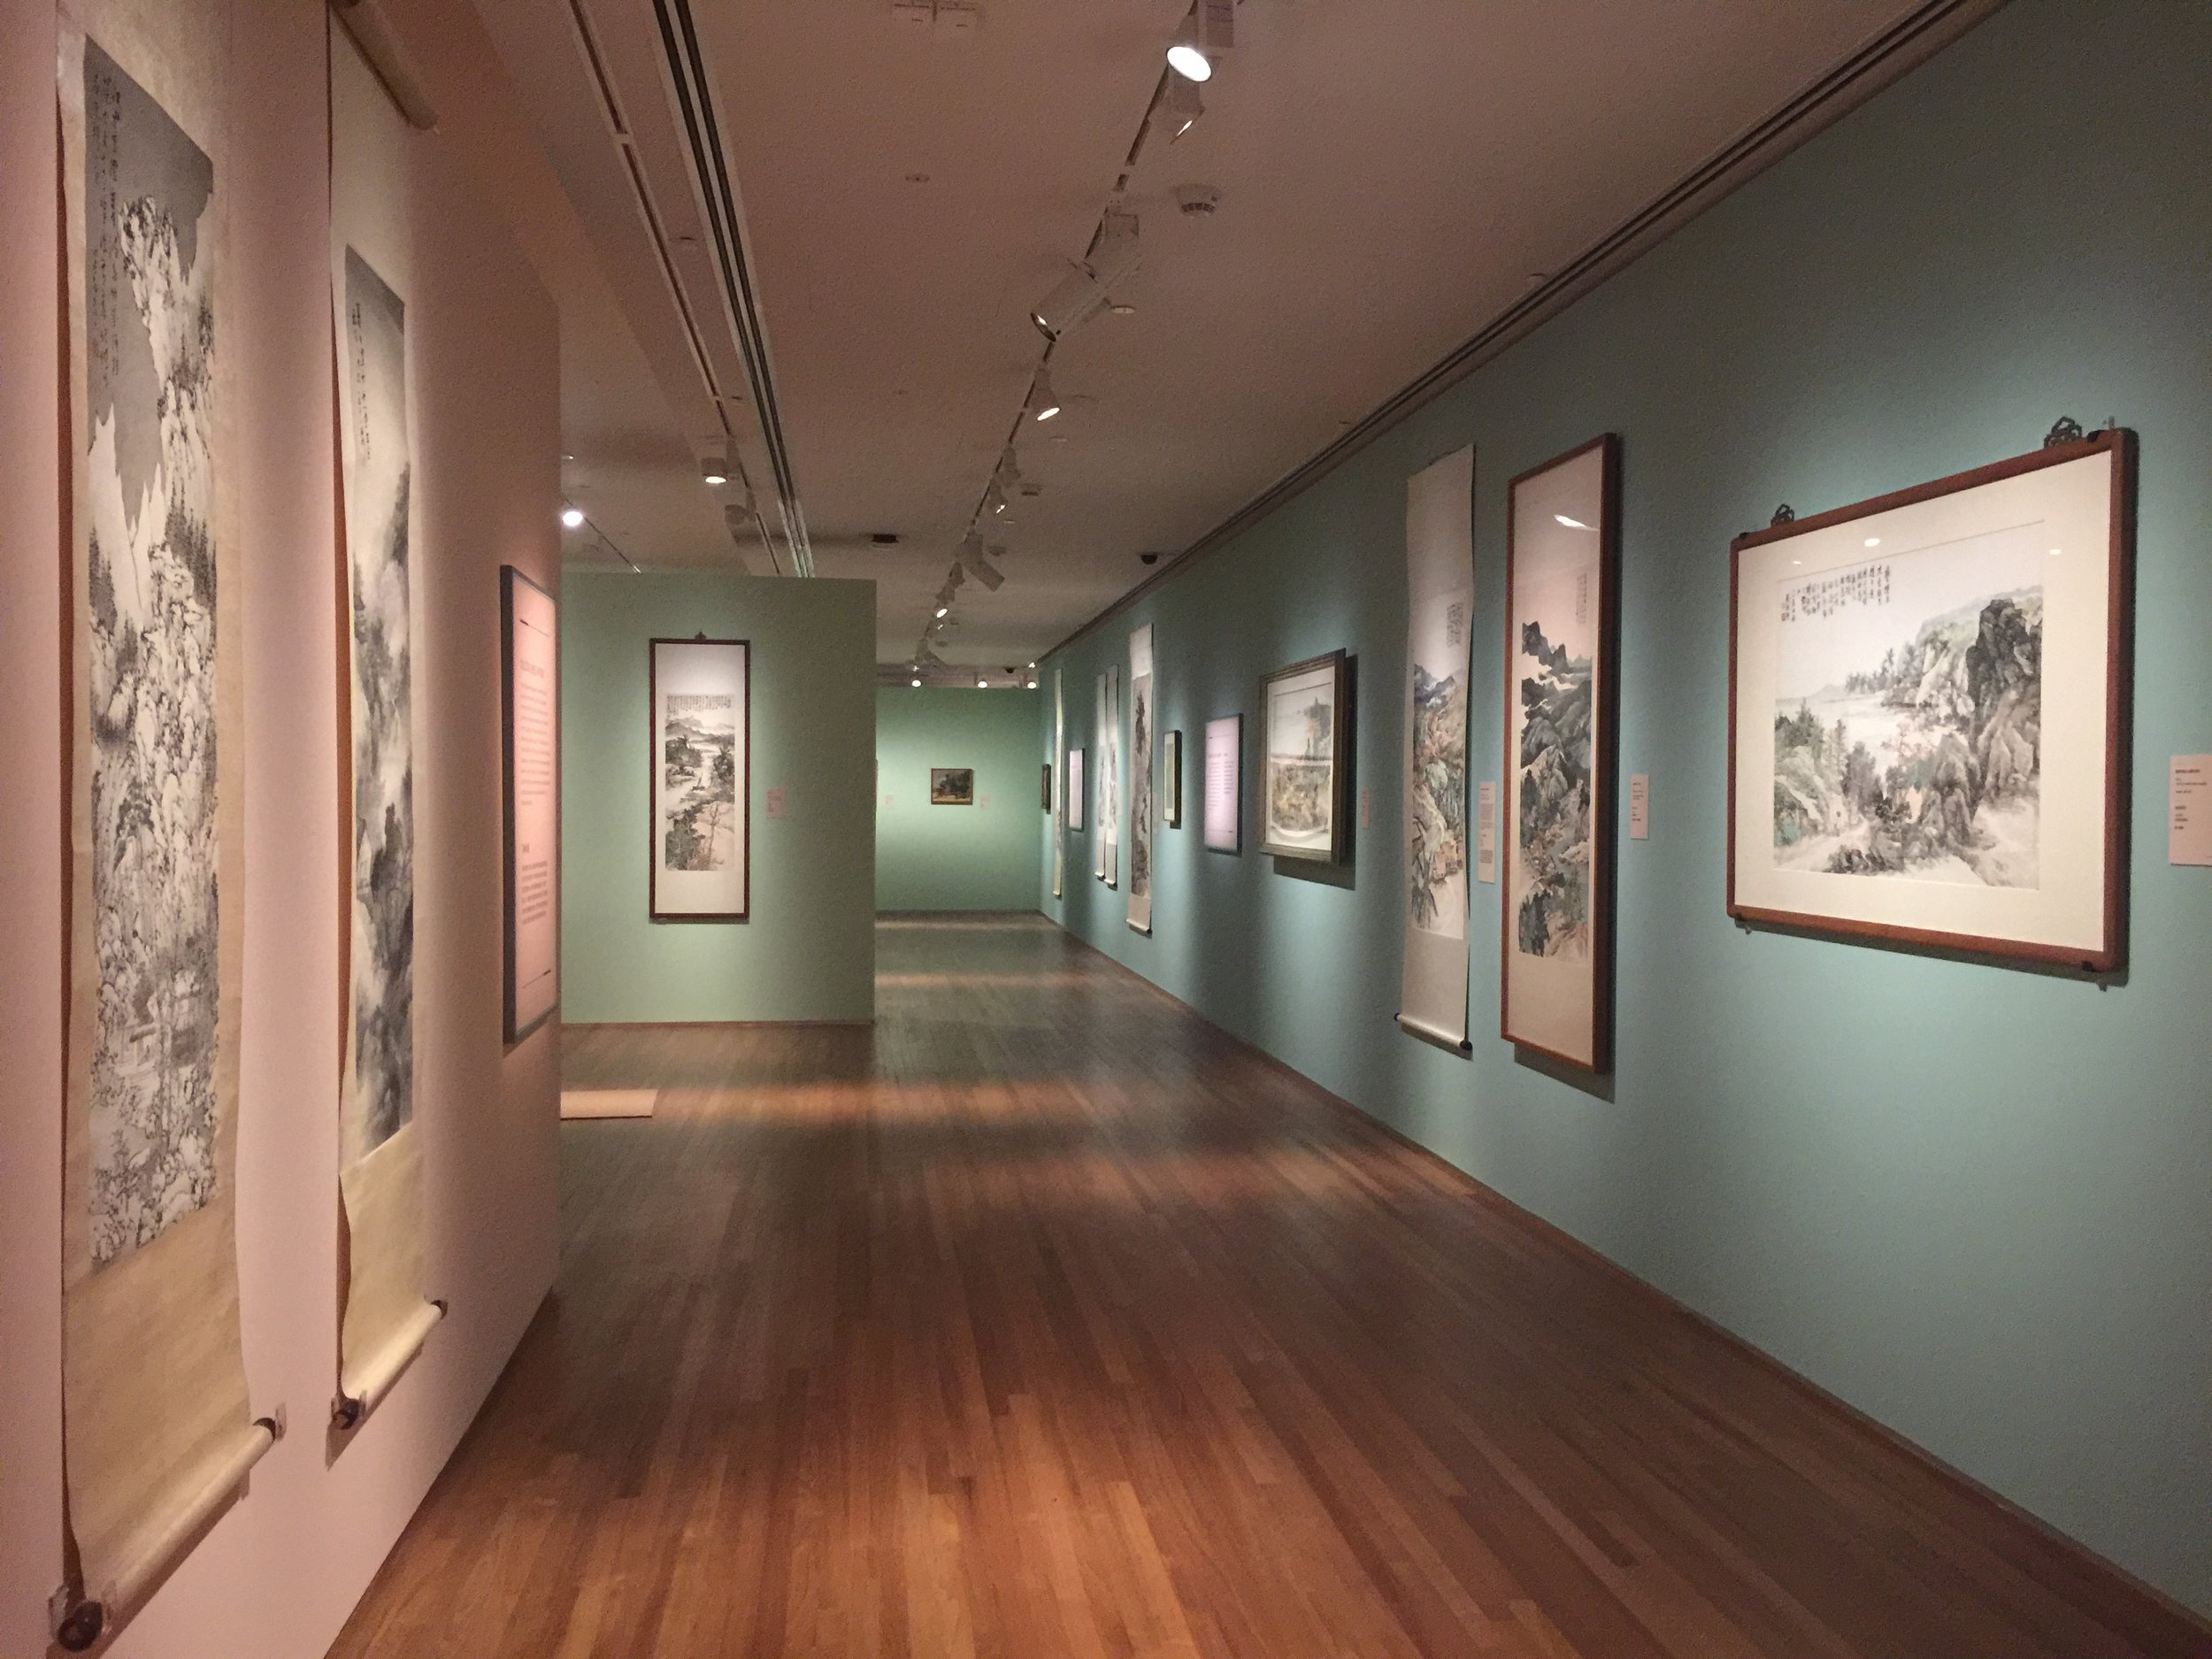 Strokes of Life: The Art of Chen Chong Swee 《生机出笔端:陈宗瑞艺术特展》